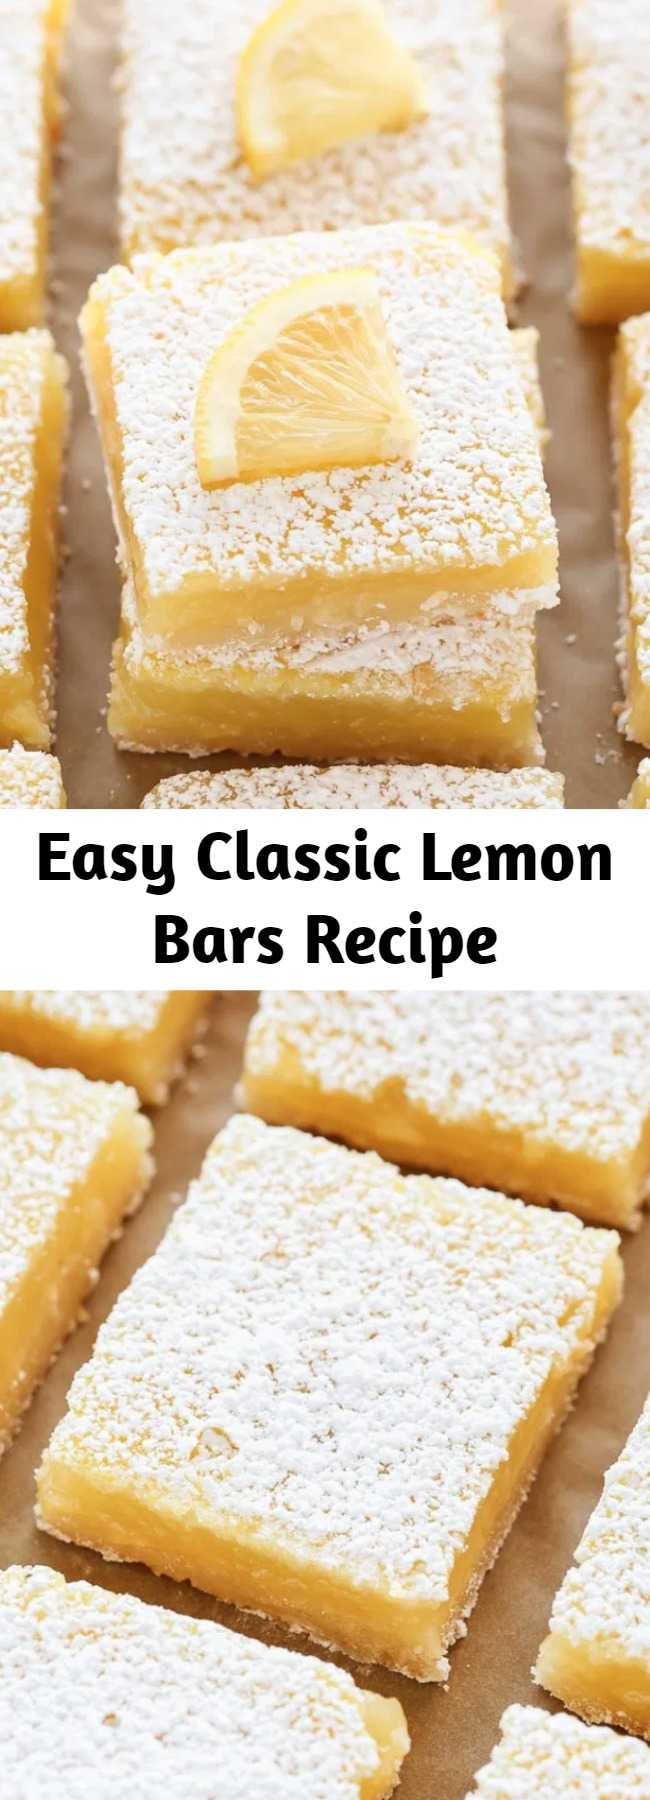 Easy Classic Lemon Bars Recipe - These Classic Lemon Bars feature an easy homemade shortbread crust and a sweet and tangy lemon filling. These bars are so easy to make and perfect for lemon lovers!